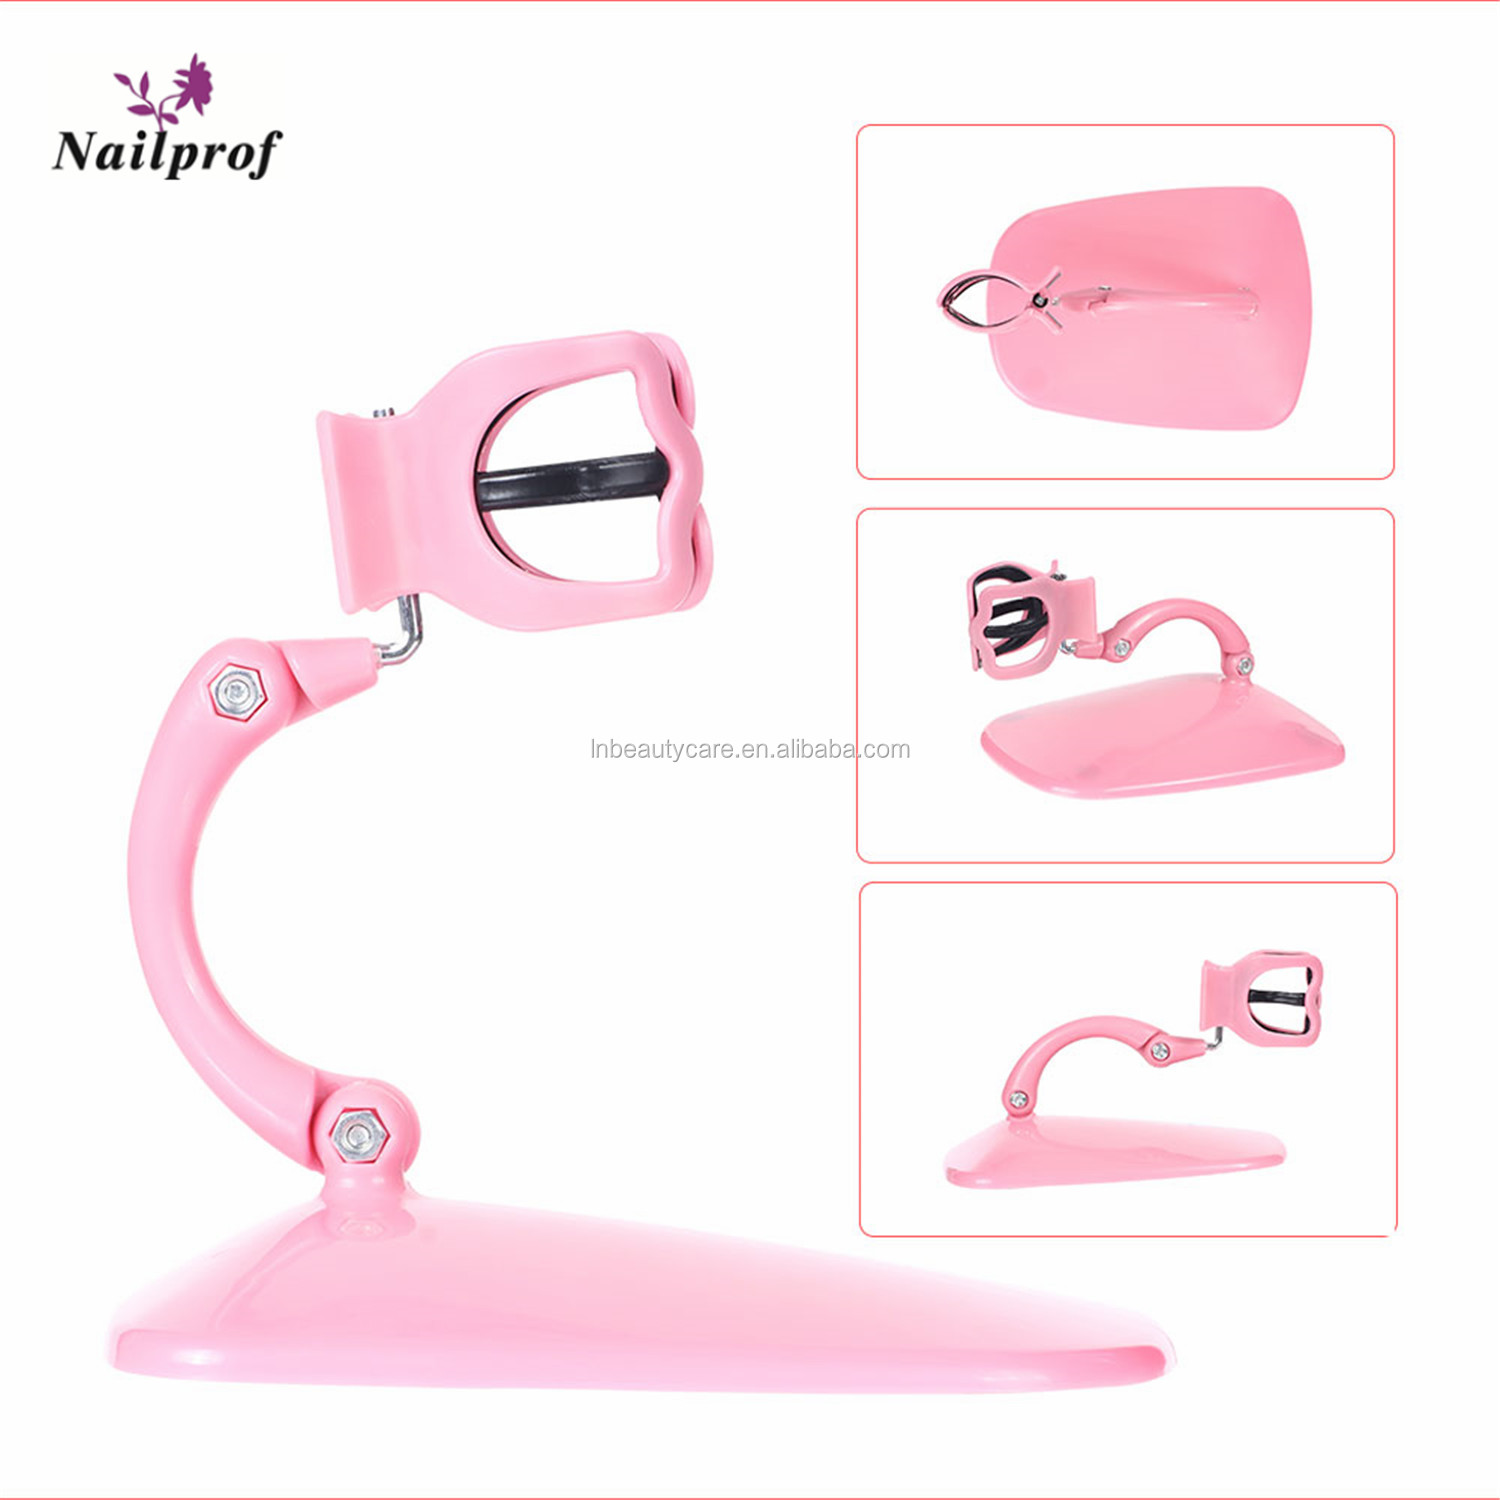 Nailprof. Adjustable Hand Free Nail Polish Bottle Holder Display Stand Tilt Acrylic Manicure Polish Supportive